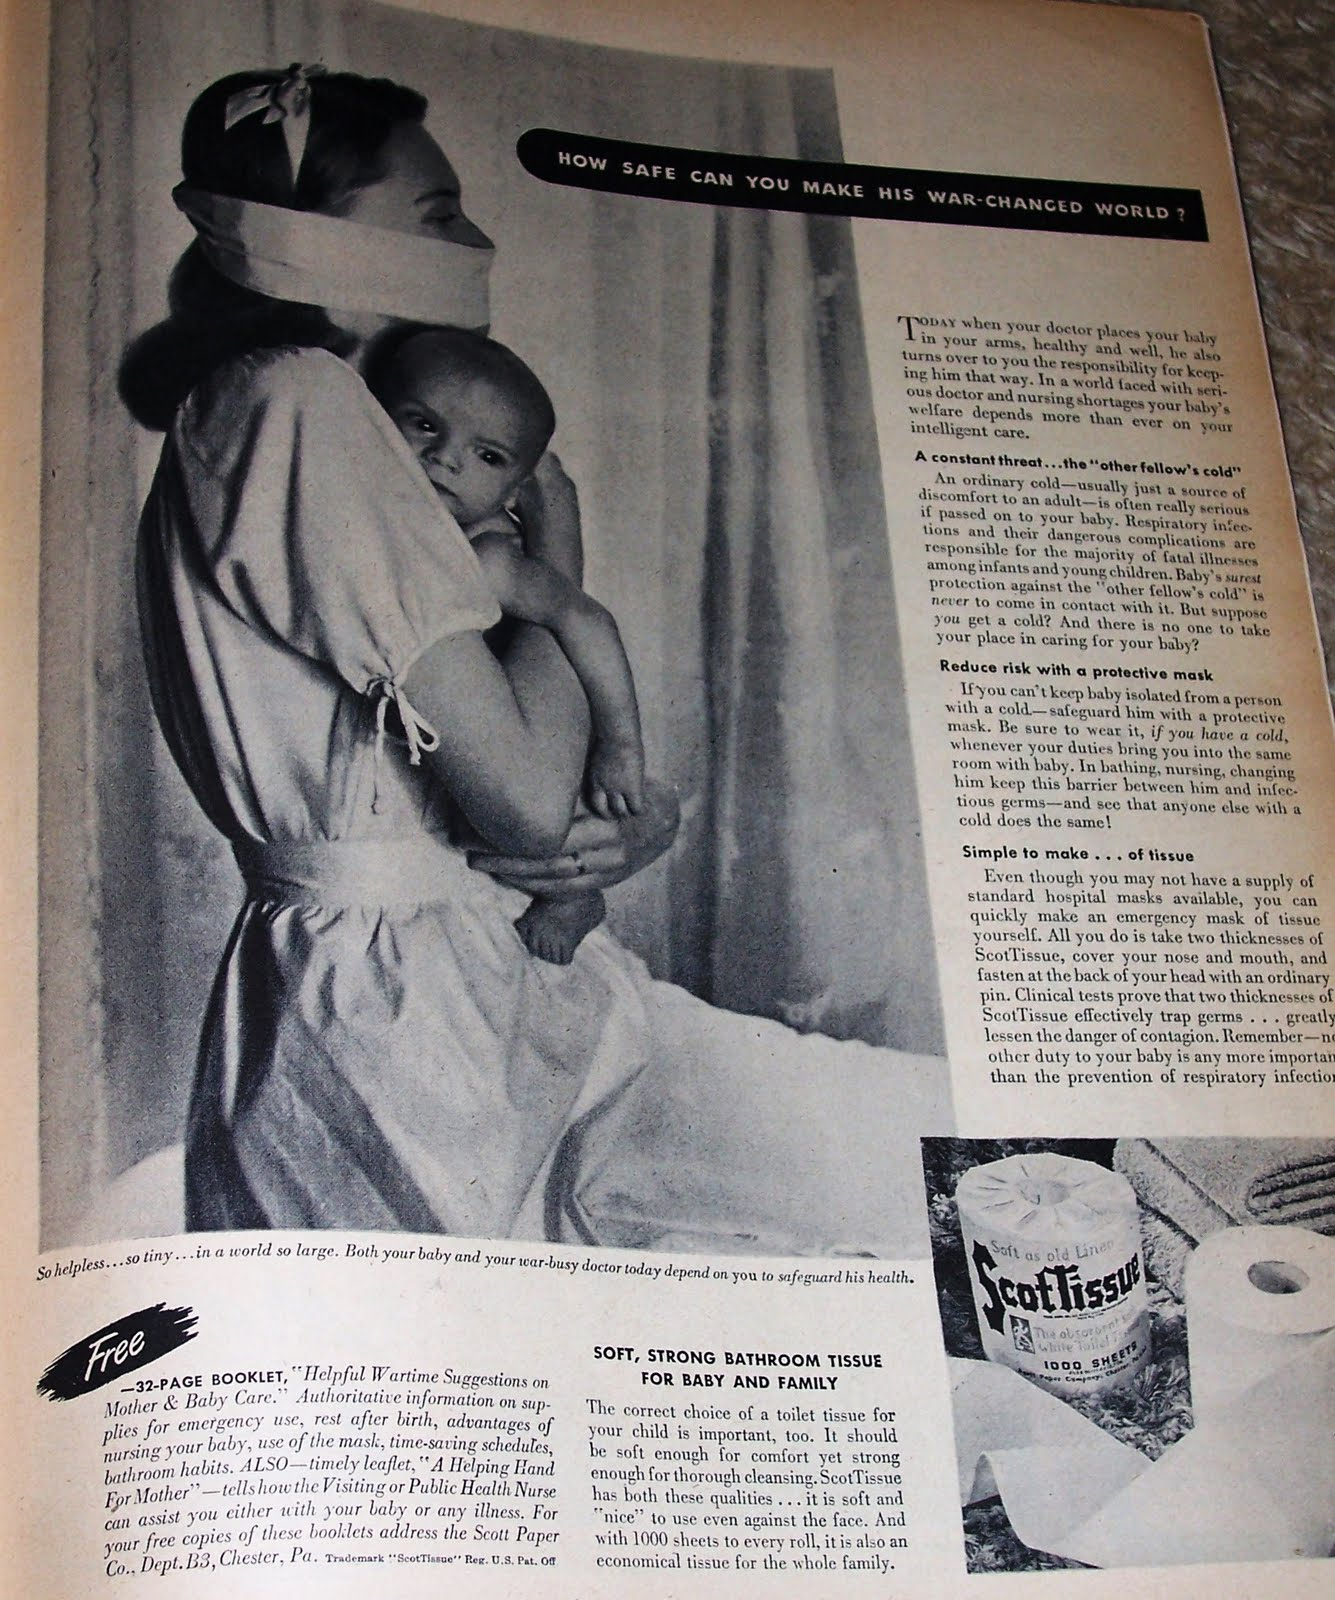 It Never Would Occur To Me That Toilet Paper Could Double As A Surgical Mask But I Suppose In Wartime You Had Do What